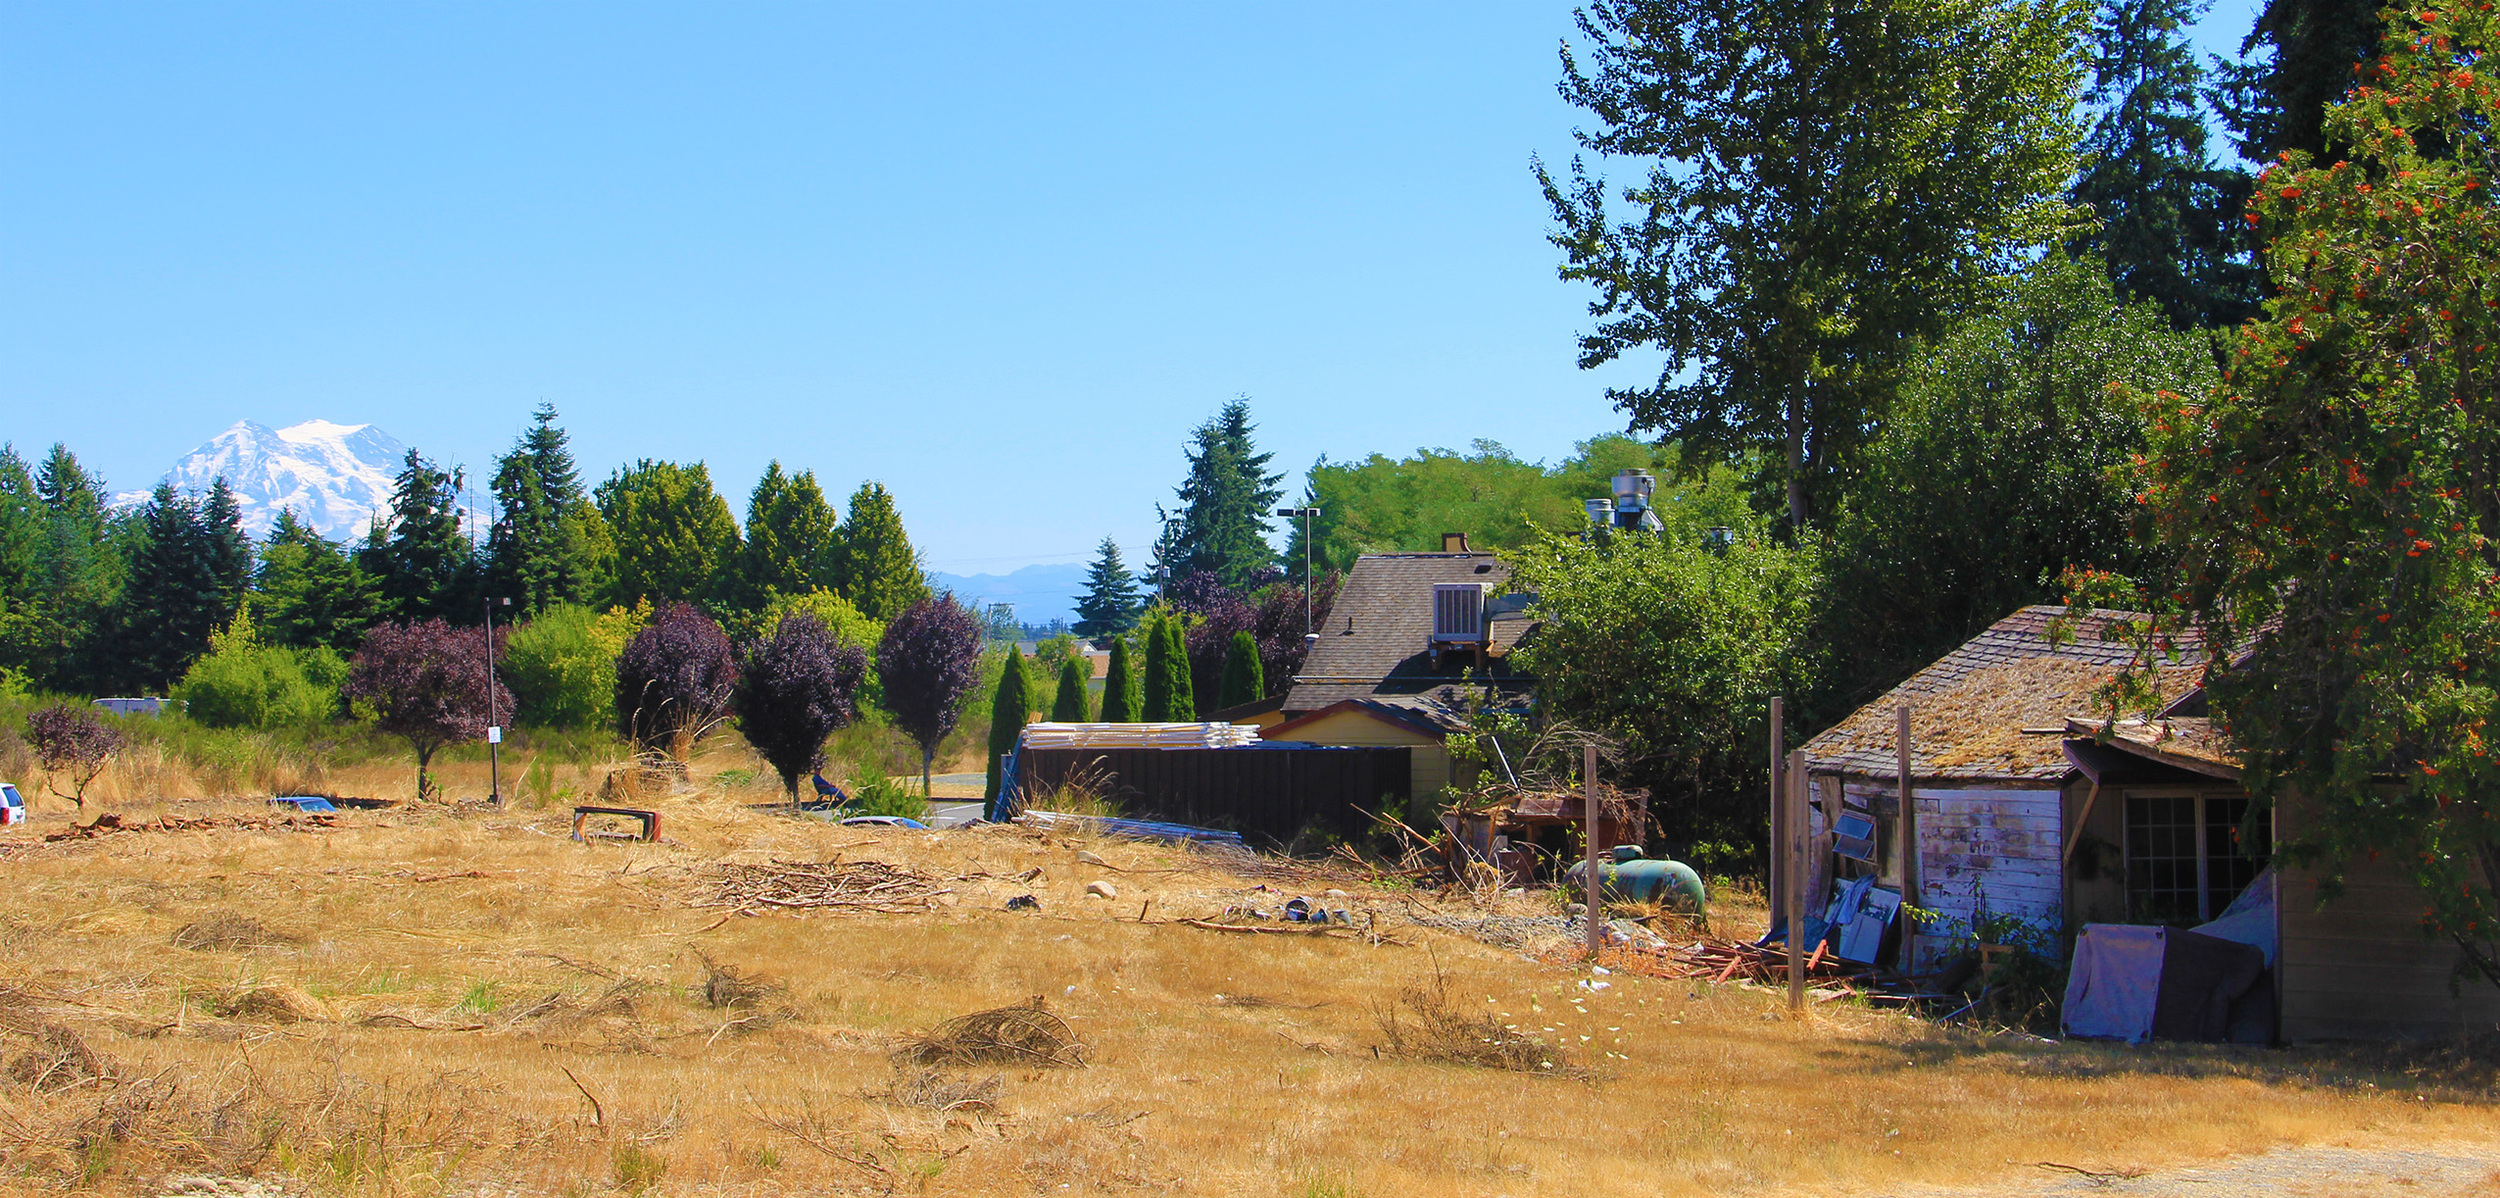 I took this photo from a vacant lot in Yelm. You can just see the tip of the mountain on the left. This home has a nice view of the mountain. It appeared that someone still lived there. It's often hard to tell the difference between lived-in and abandoned in a lot of rural communities here.